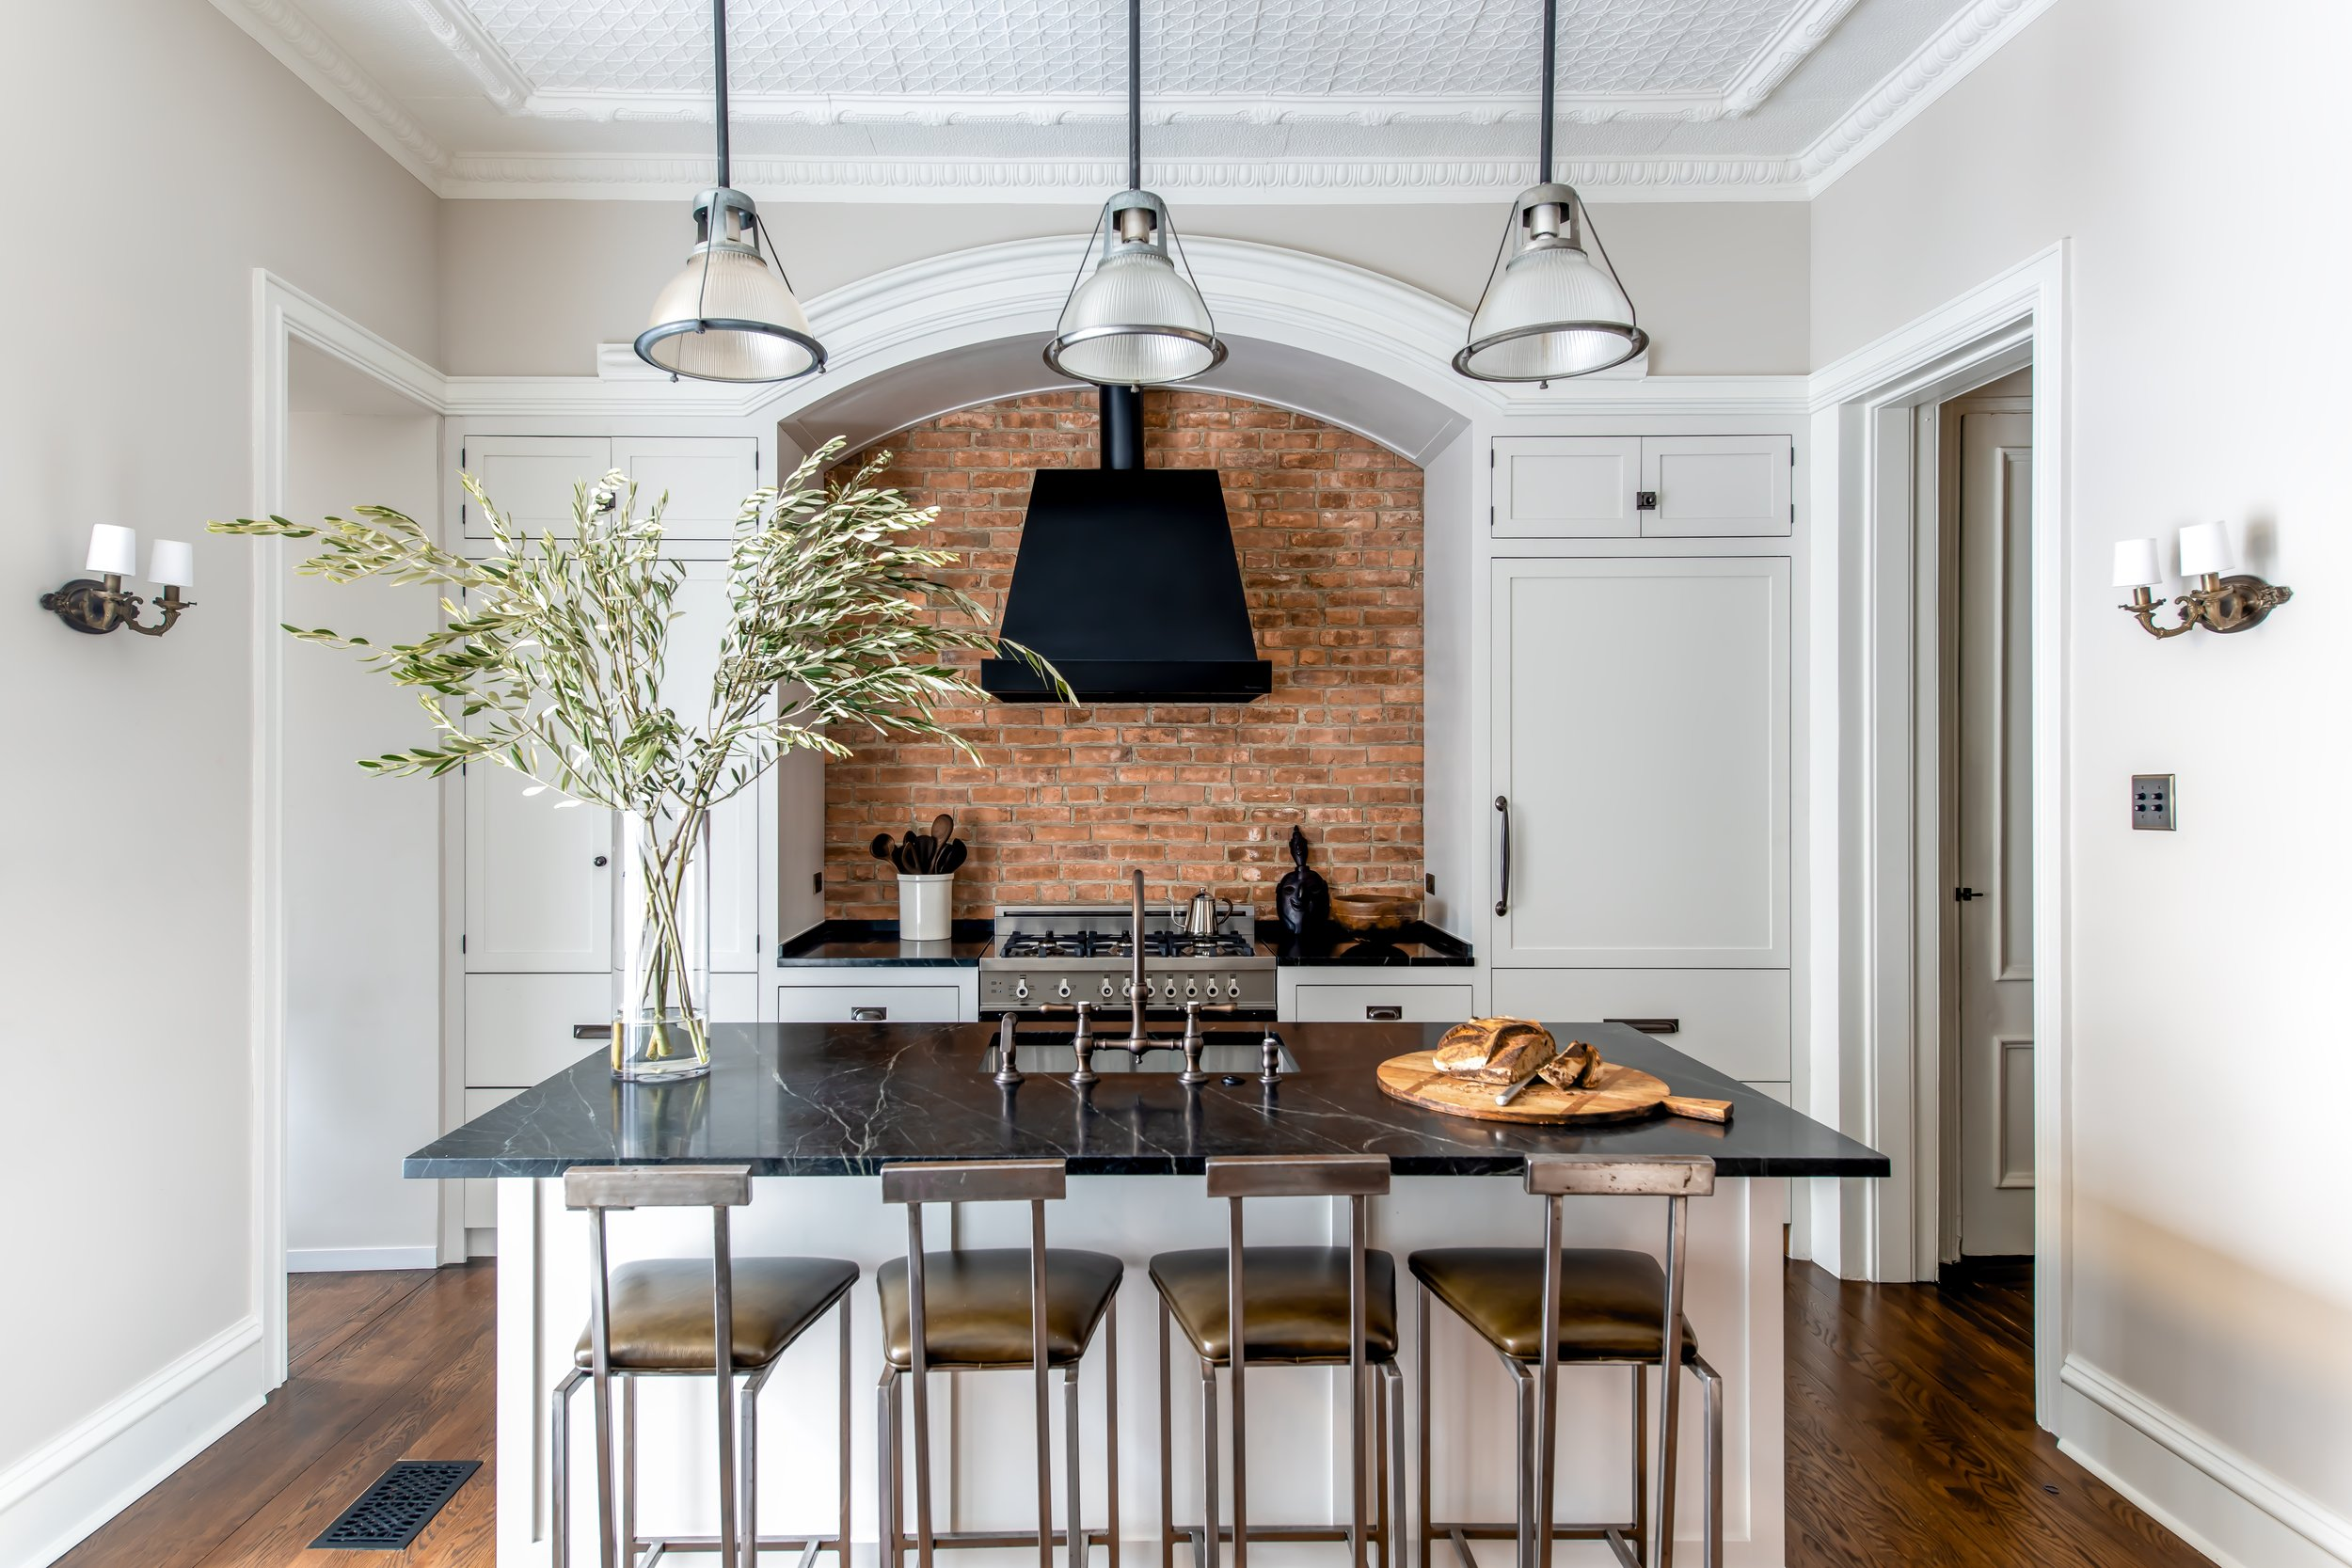 The quintessential Brooklyn kitchen with soaring 13' ceilings decorated in a custom tin design that was hand-pressed on turn of the century equipment with antique rope drop hammers and painted in Benjamin Moore White Dove along with the trim. Custom cabinets painted in Benjamin Moore Silver Satin create the perfect amount of contrast and are finished in Armac Martin hardware. The original brickwork from the 1860s was exposed and repointed to be the feature under a custom arch to compliment the original arched stained glass window that leads out to the terrace and private garden. Both the Sub-Zero refrigerator and Miele dishwasher were hidden behind cabinet panels with the Bertazzoni gas range as the only appliance left exposed. Newport Brass fixtures are deck mounted into the deepest green soapstone countertops. Custom steel chairs in an olive green Dualoy leather provide seating with vintage holophane lights from Olde Good Things to illuminate the large space.